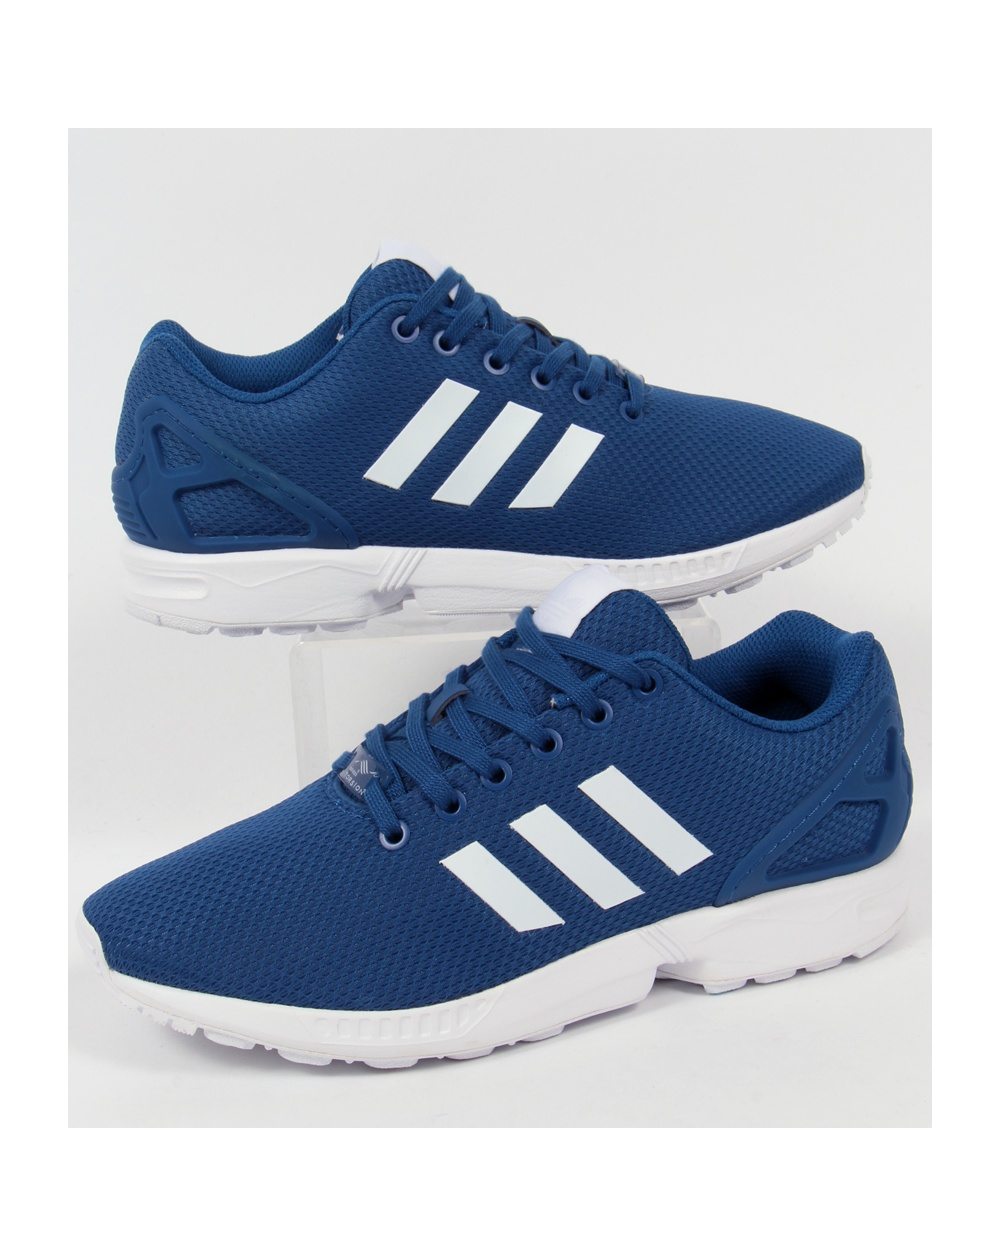 adidas originals zx flux trainers royal blue white. Black Bedroom Furniture Sets. Home Design Ideas